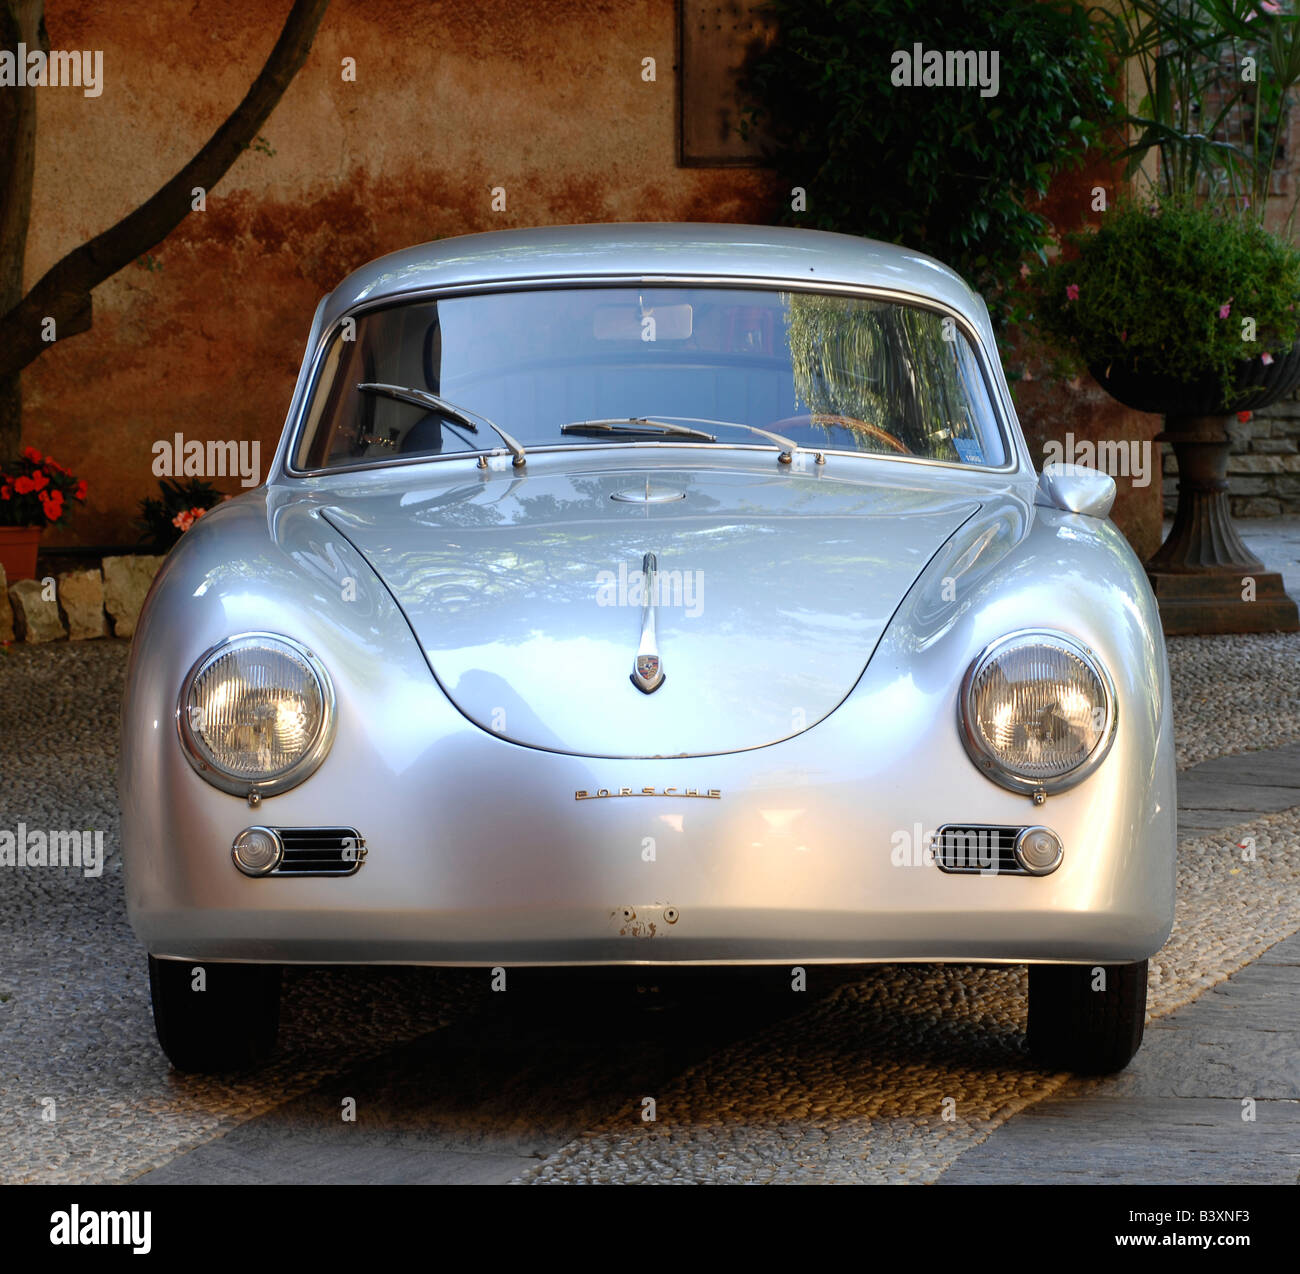 Porsche 356A 1599 GS Carrera 1956 - Stock Image